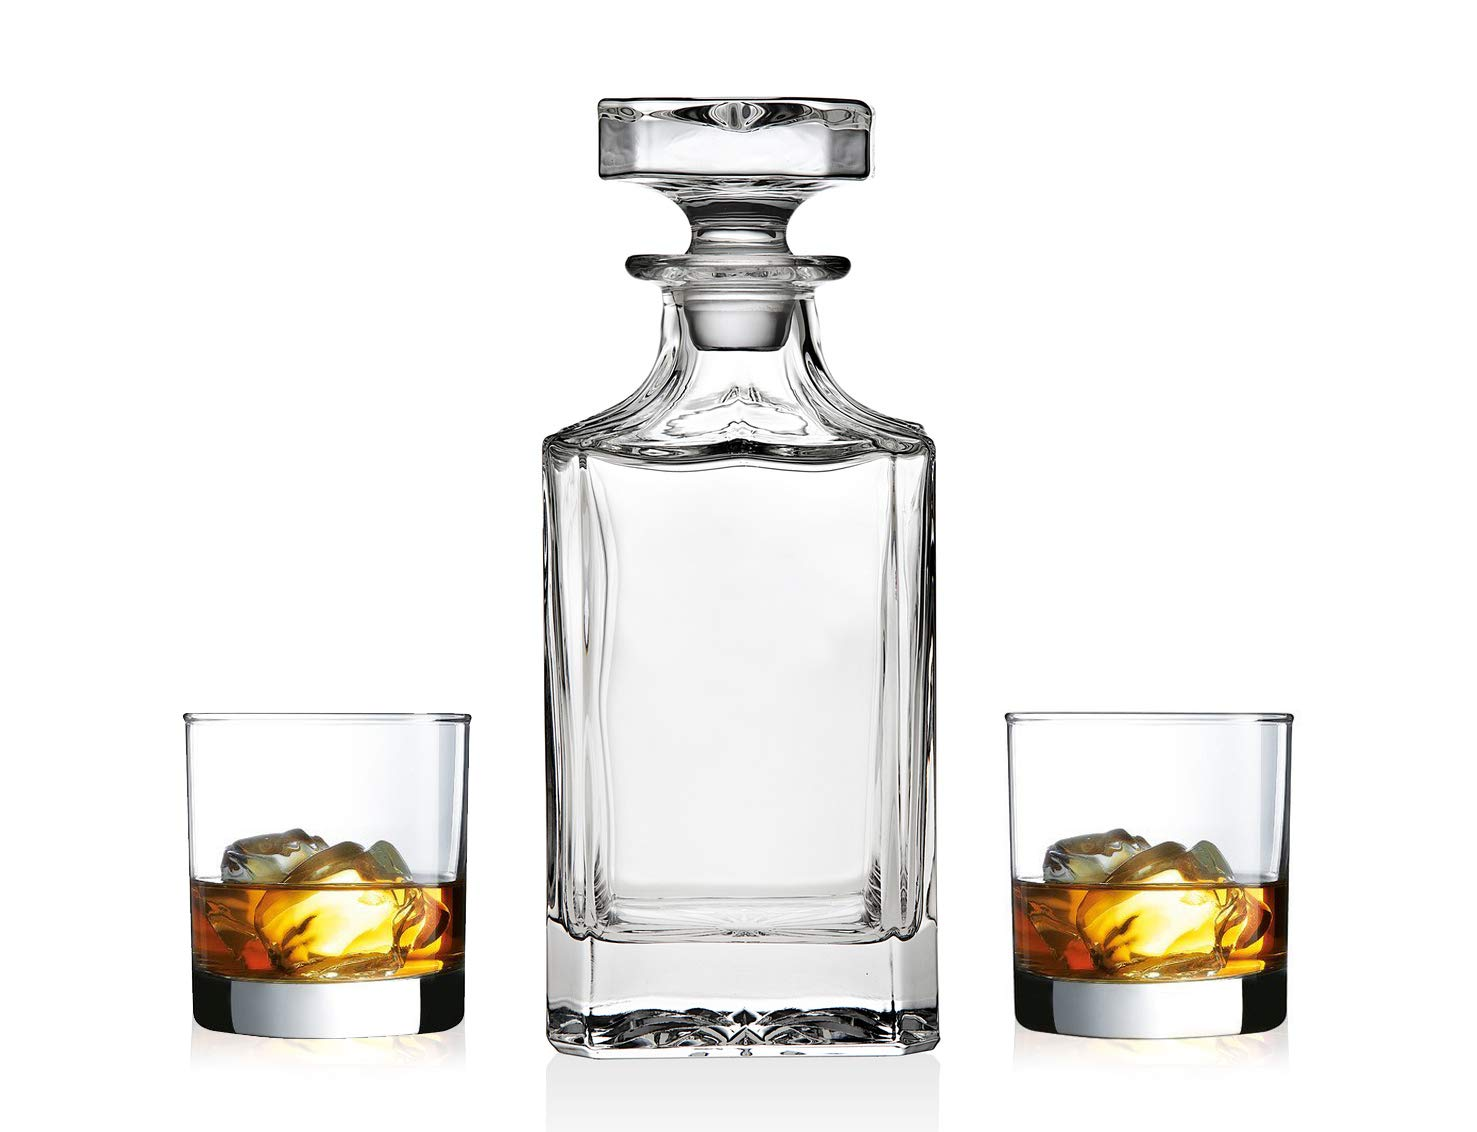 James Scott Whiskey Decanter set for Liquor Scotch Bourbon or Wine, This LEAD FREE Bar Set Includes a 750 ml Decanter with 2 DOF Whisky Glasses-Perfect Men's Gift, Boyfriend Gift, Father's Day Gift.